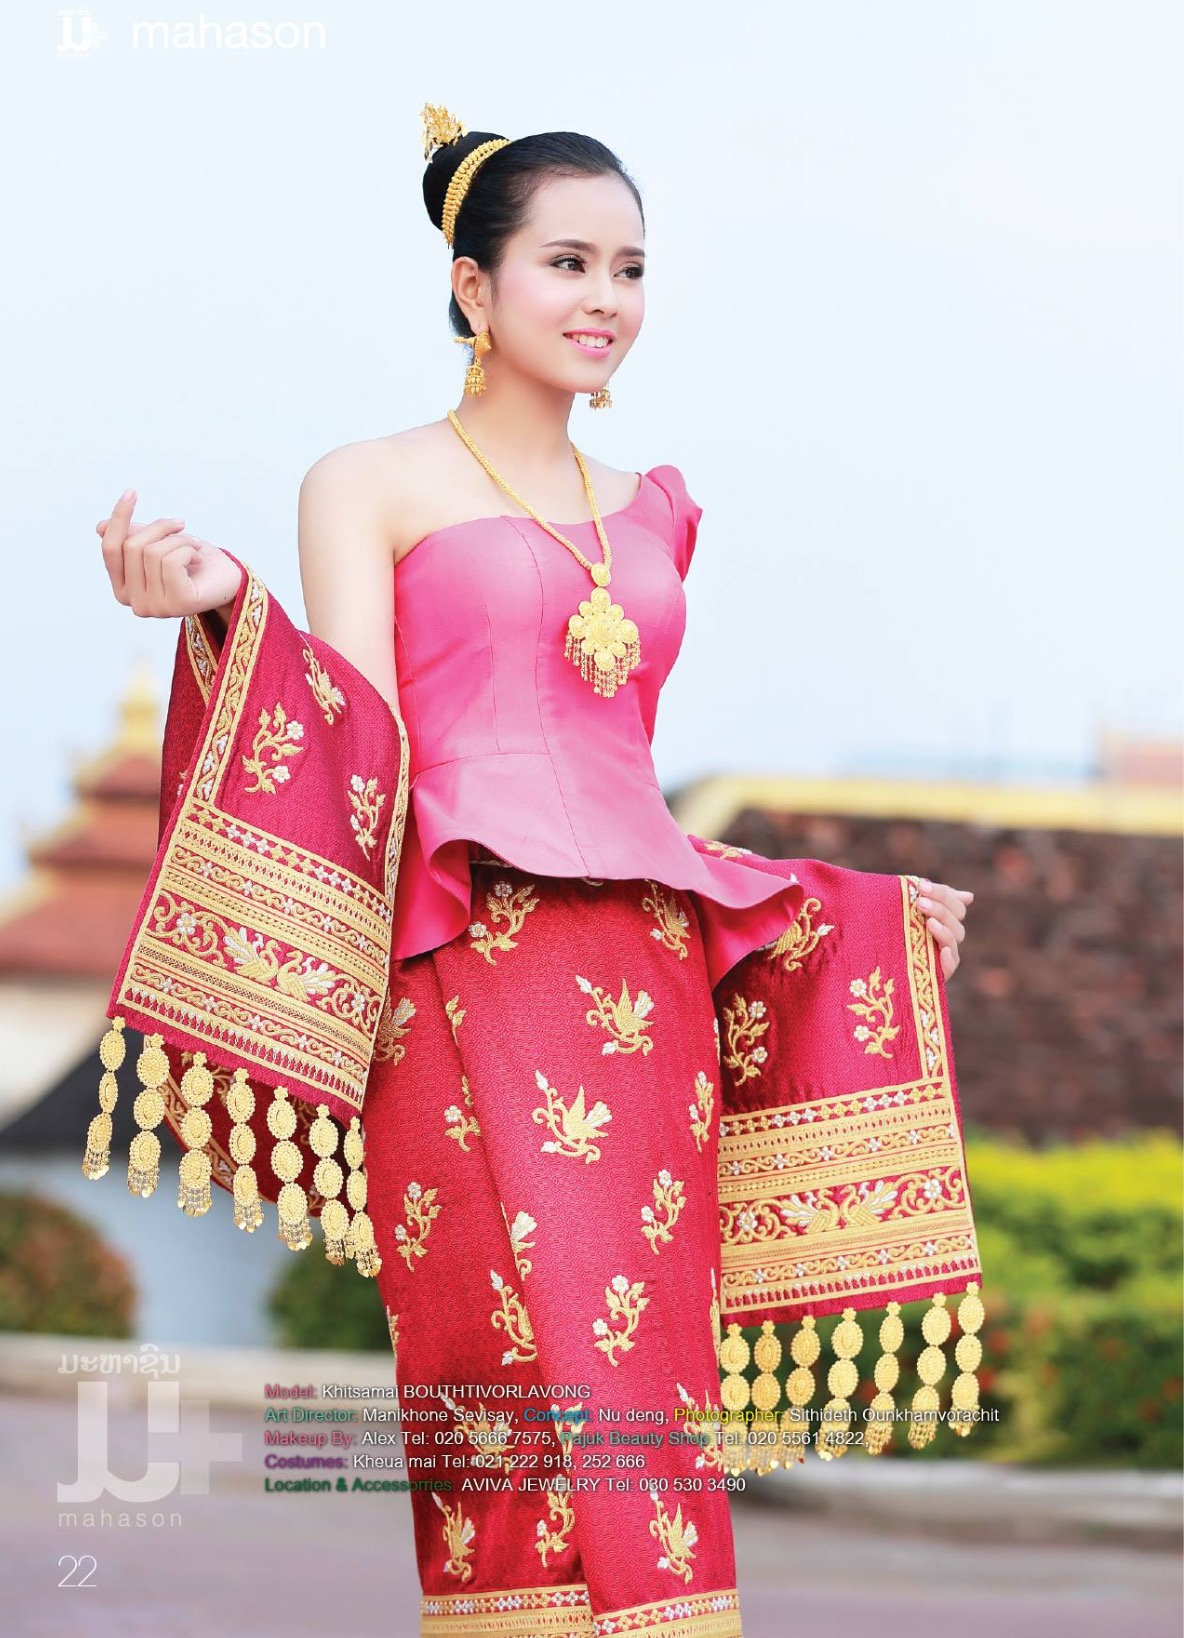 Pin by Rice In Water on Hmong | Pinterest | Traditional, Dangles and ...